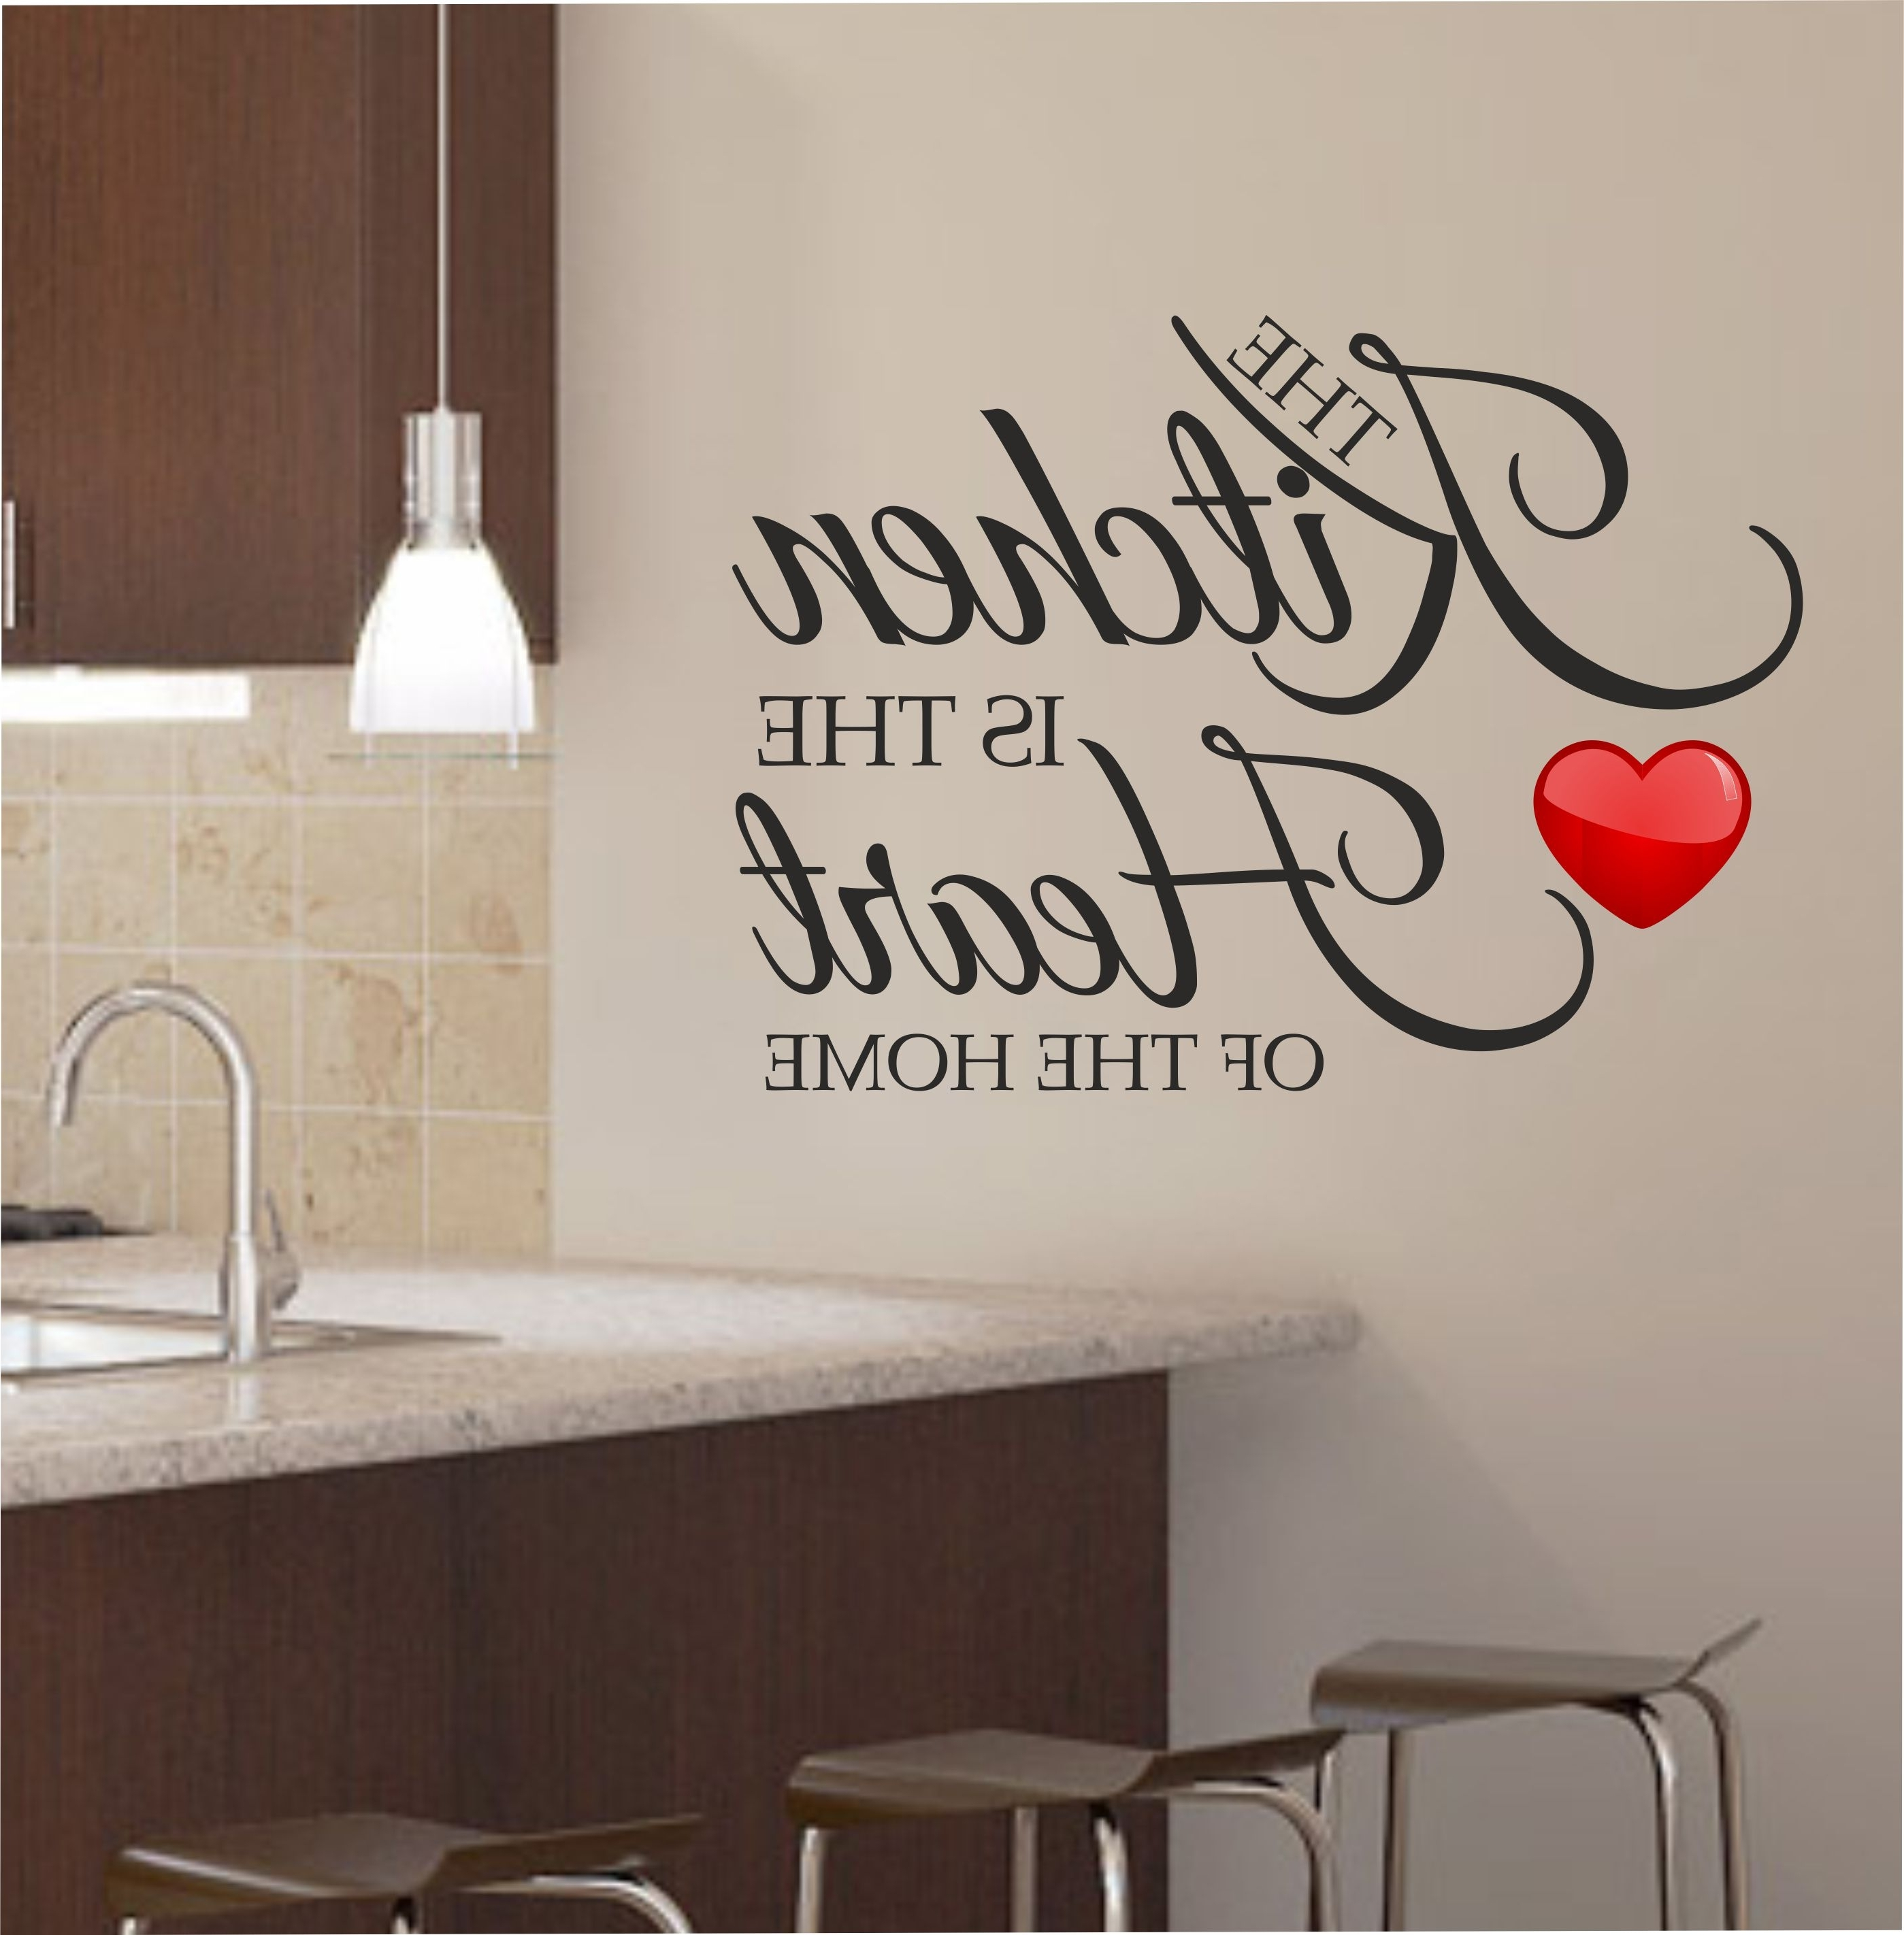 Decorate Your Kitchen With Appealing Kitchen Wall Art – Designinyou Regarding Well Liked Kitchen Wall Art (View 3 of 15)